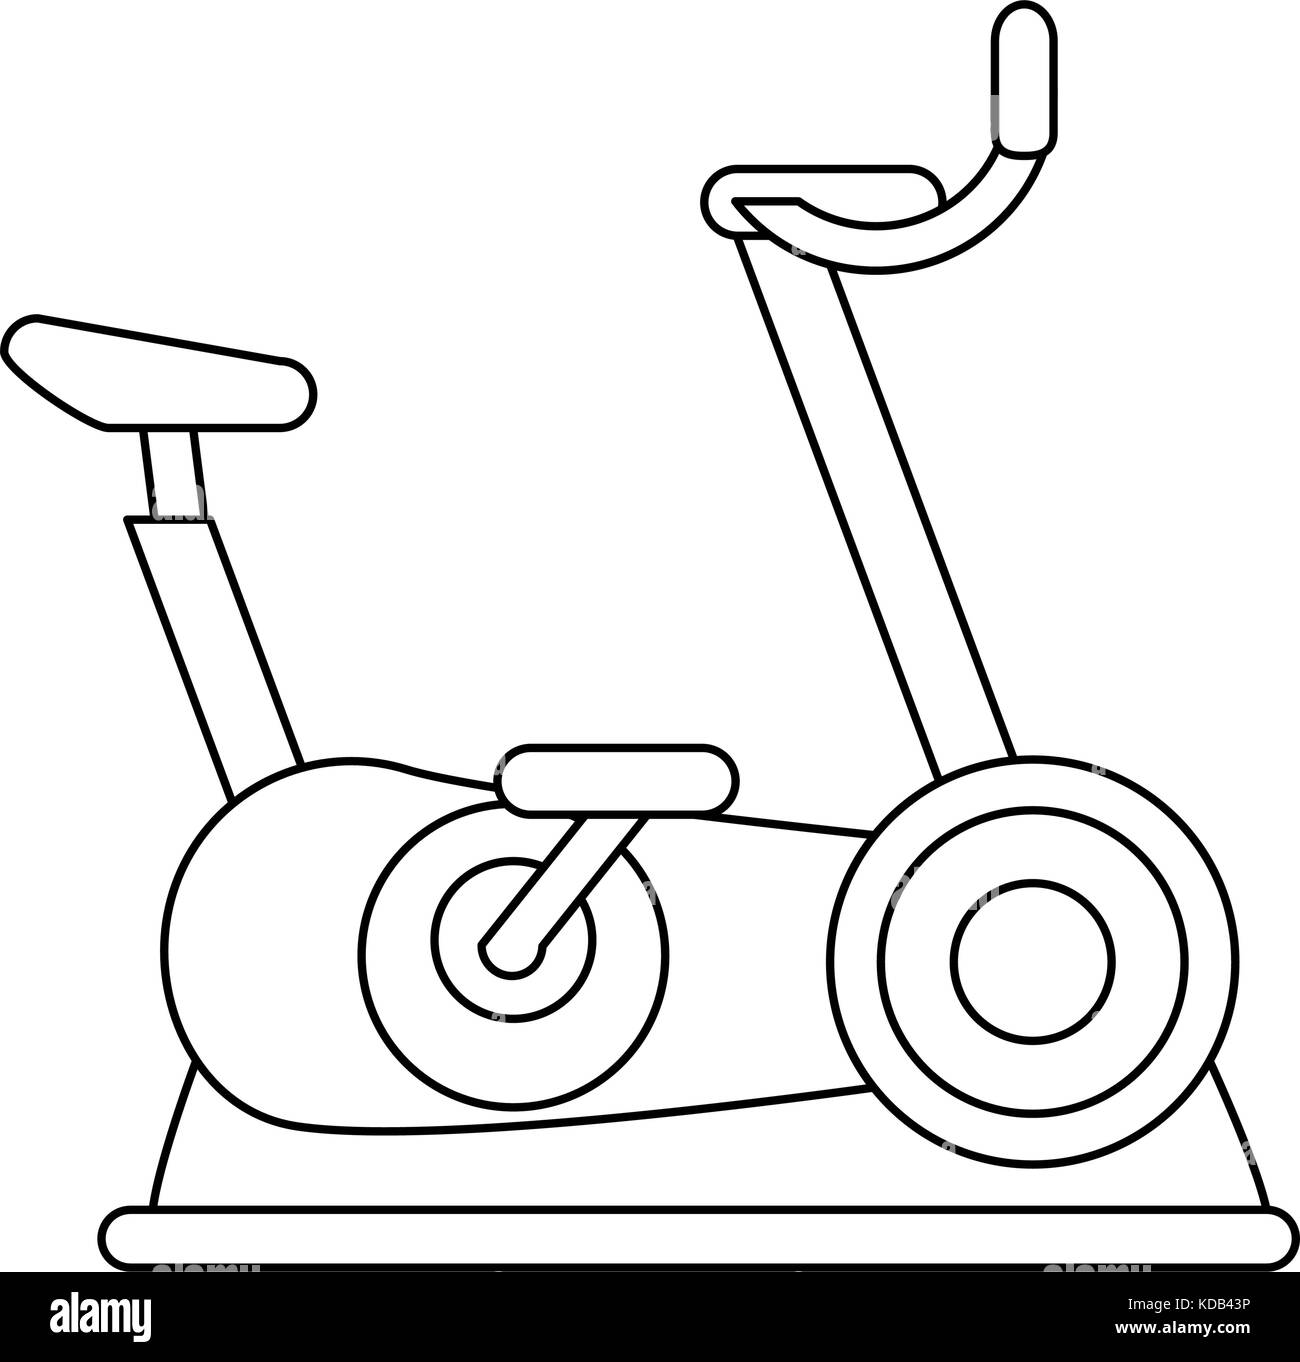 spinning bike fitness or sport related icon image KDB43P stationary bike black and white stock photos & images alamy